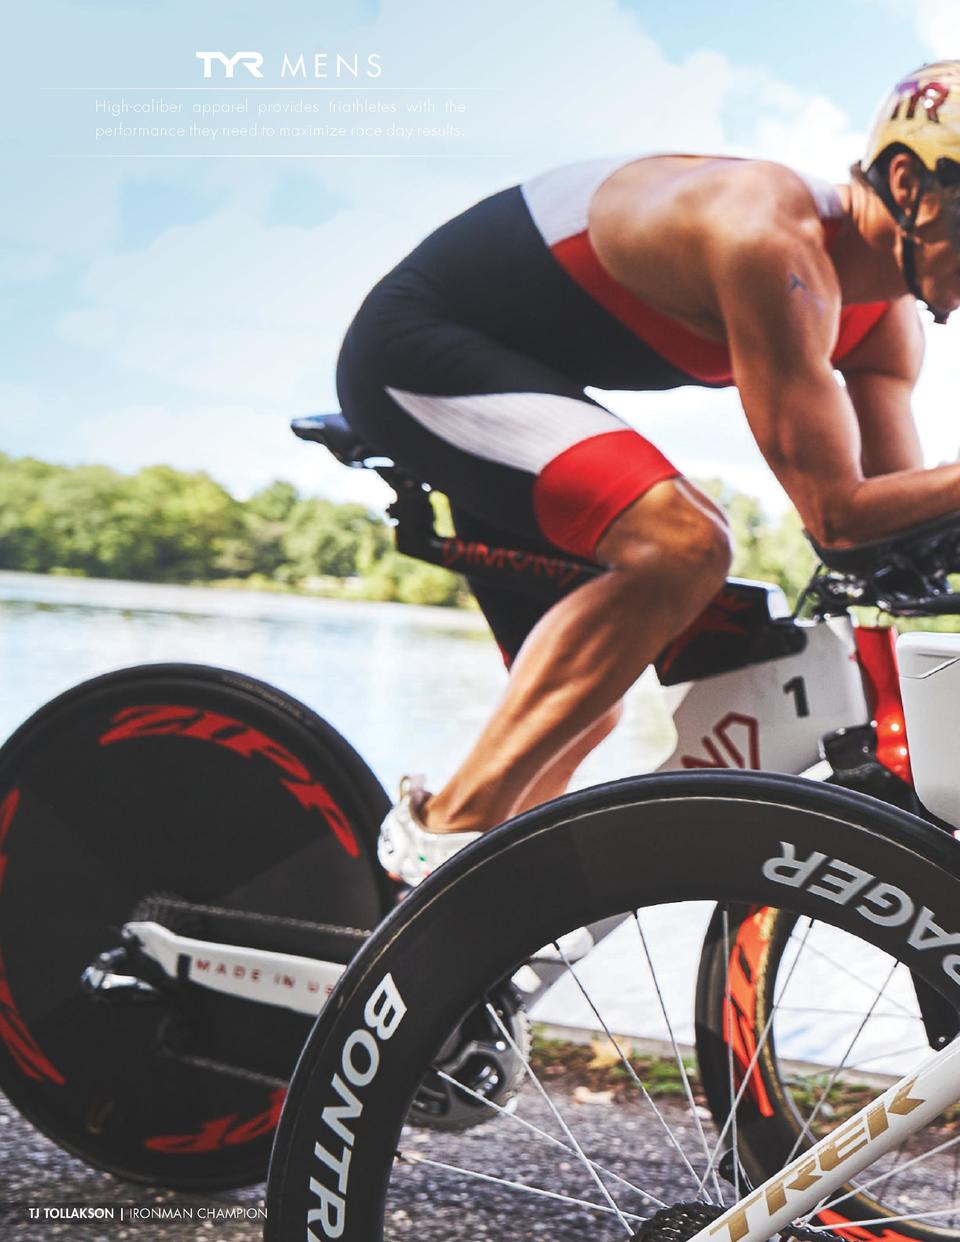 TECHNICAL SWIM  MENS High-caliber apparel provides triathletes with the performance they need to maximize race day results...